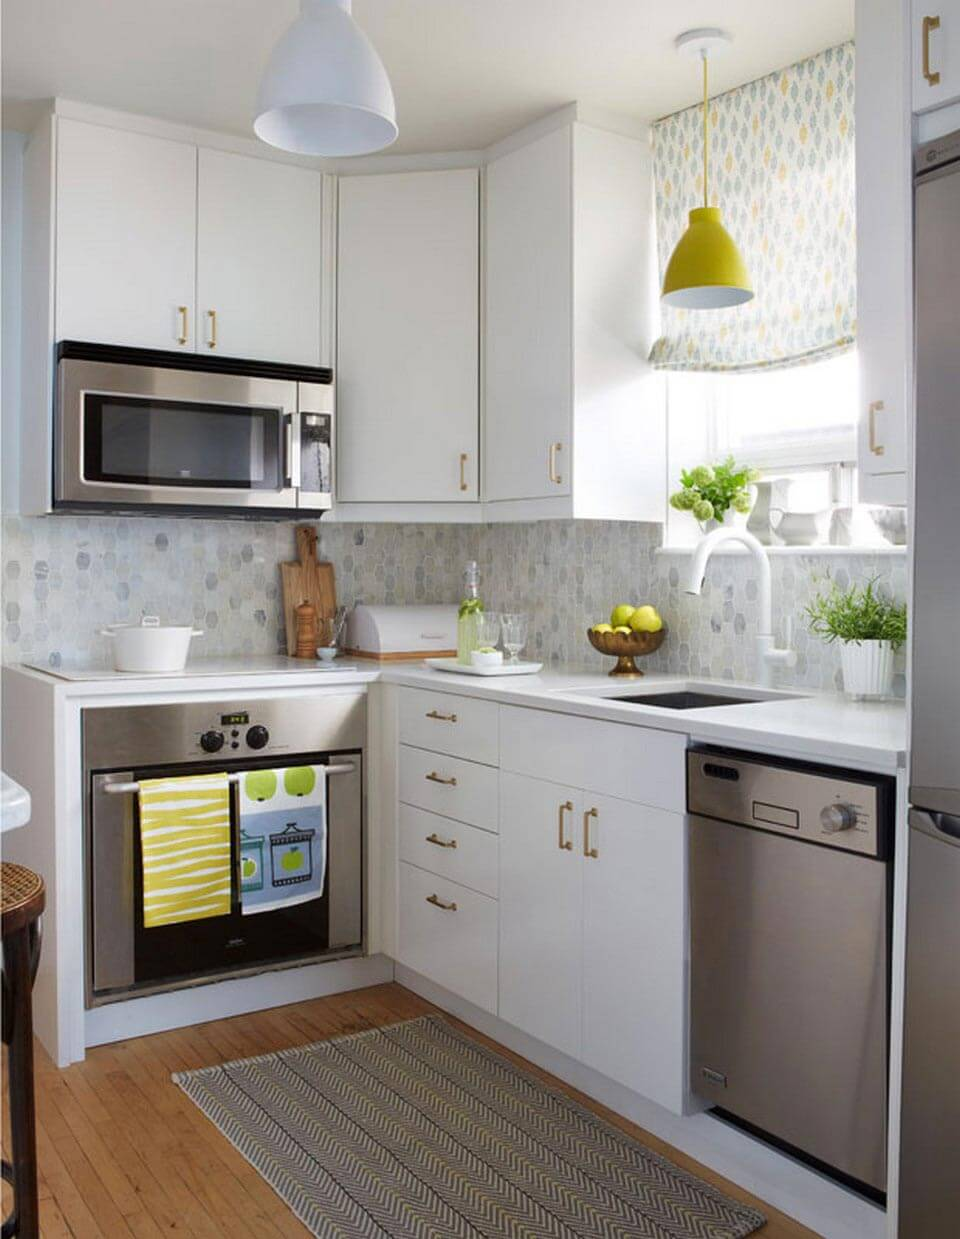 Kitchen Ideas: 30 Best Small Kitchen Decor And Design Ideas For 2020